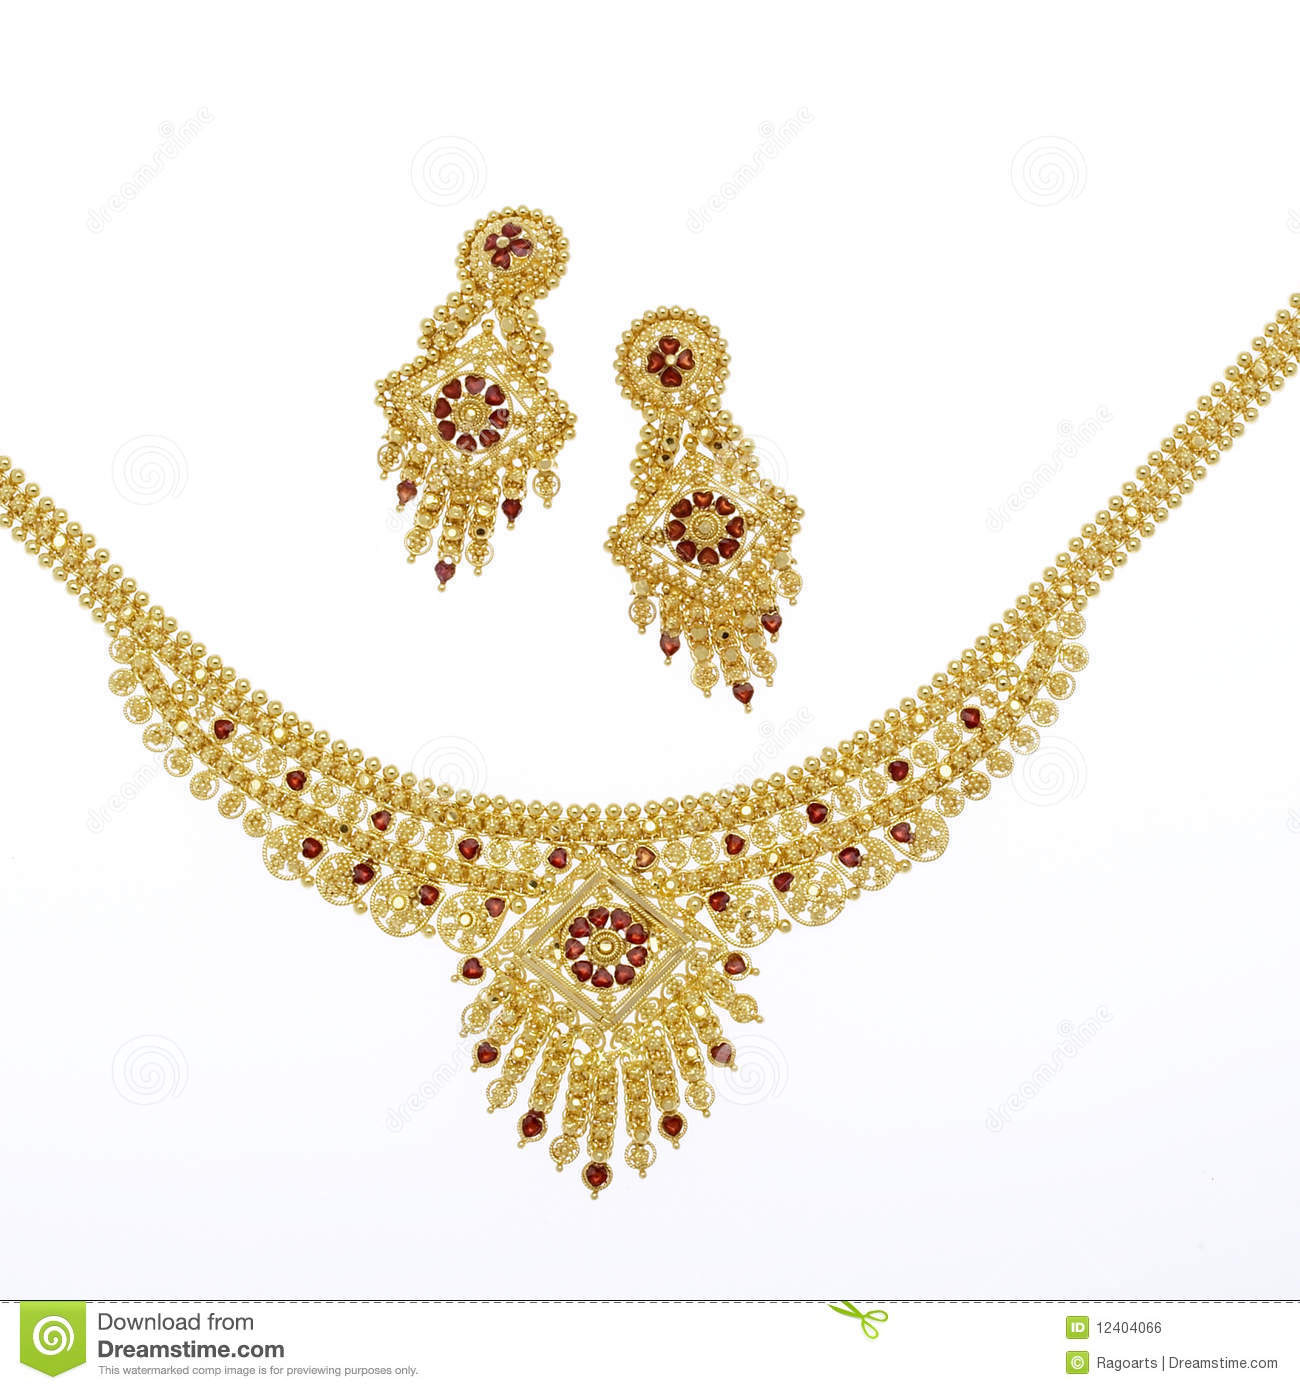 Gold necklace and matching earrings